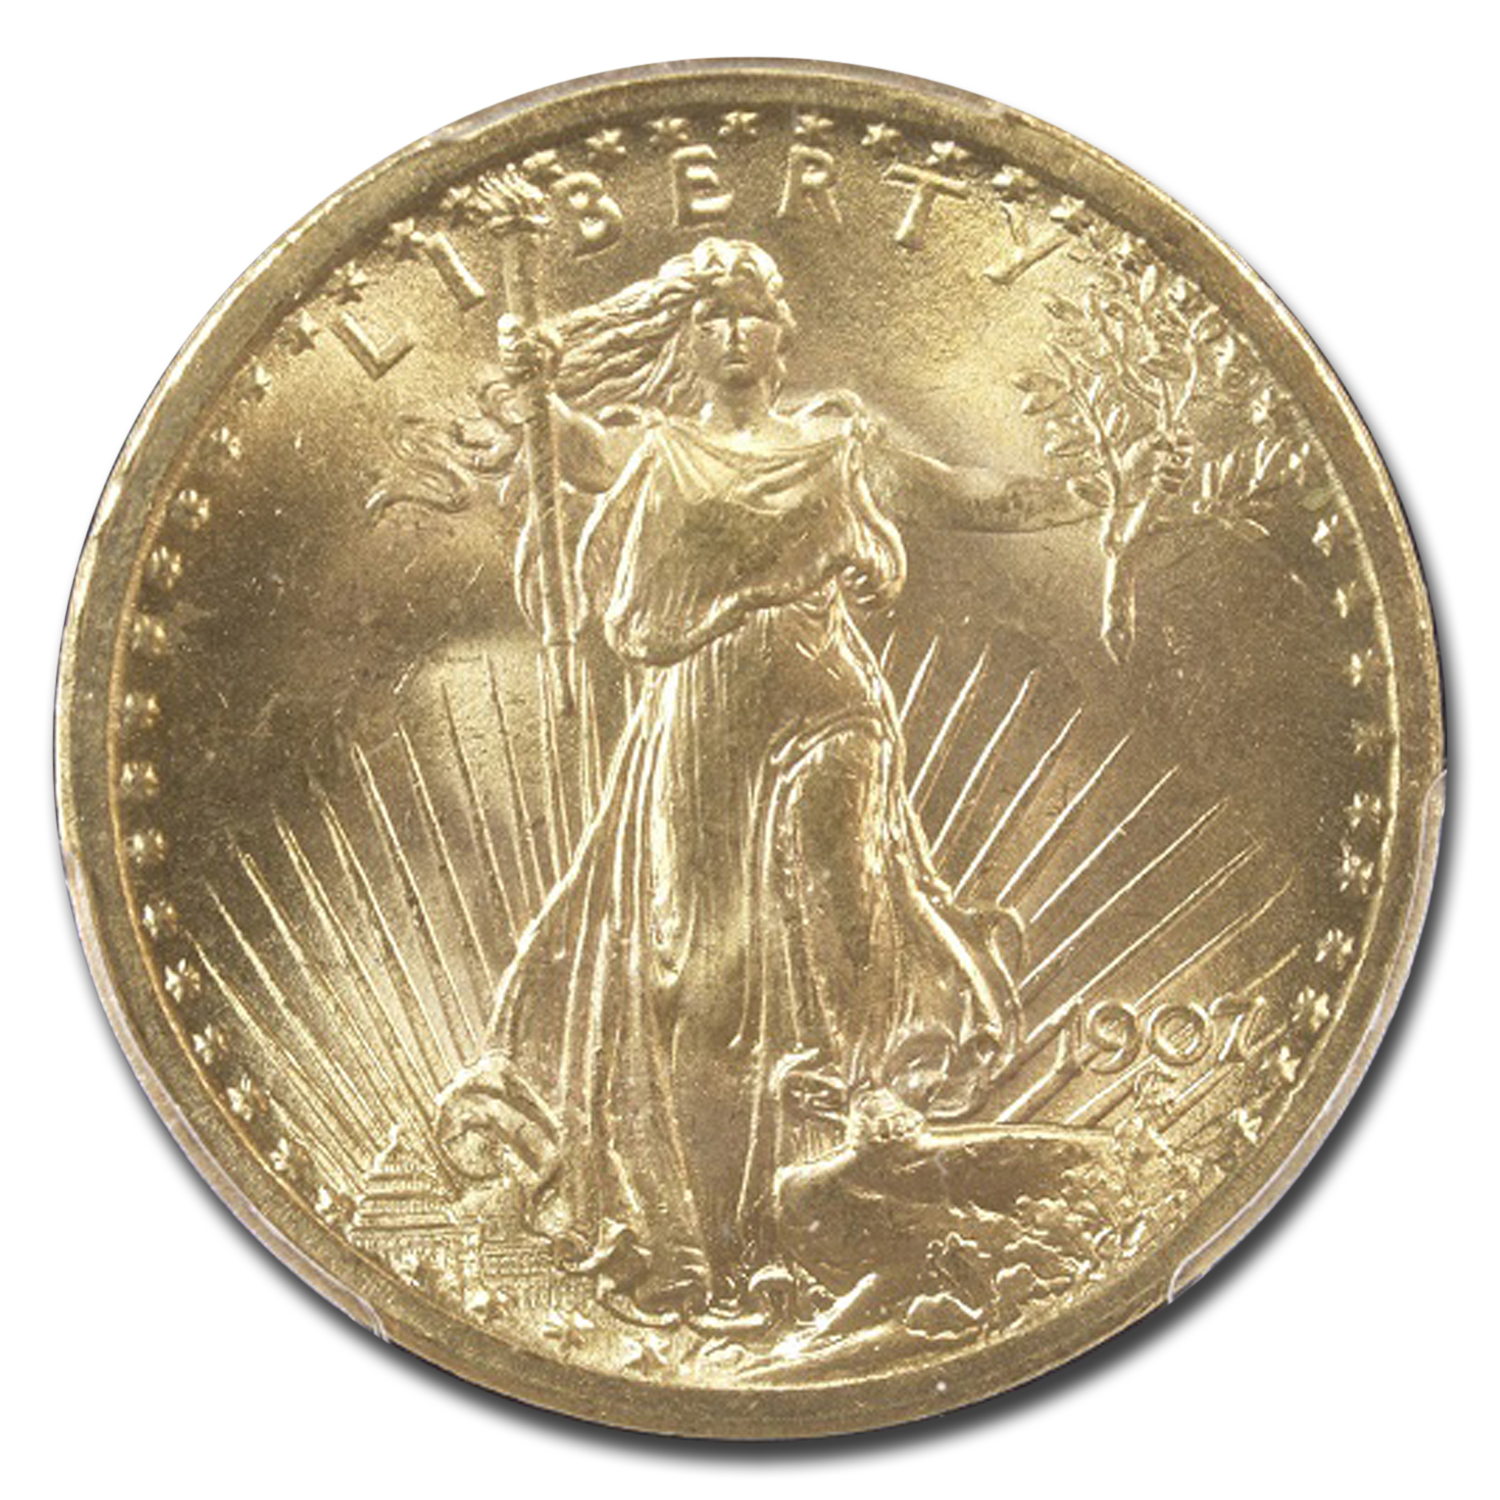 1907 $20 St. Gaudens Gold Double Eagle MS-66 PCGS